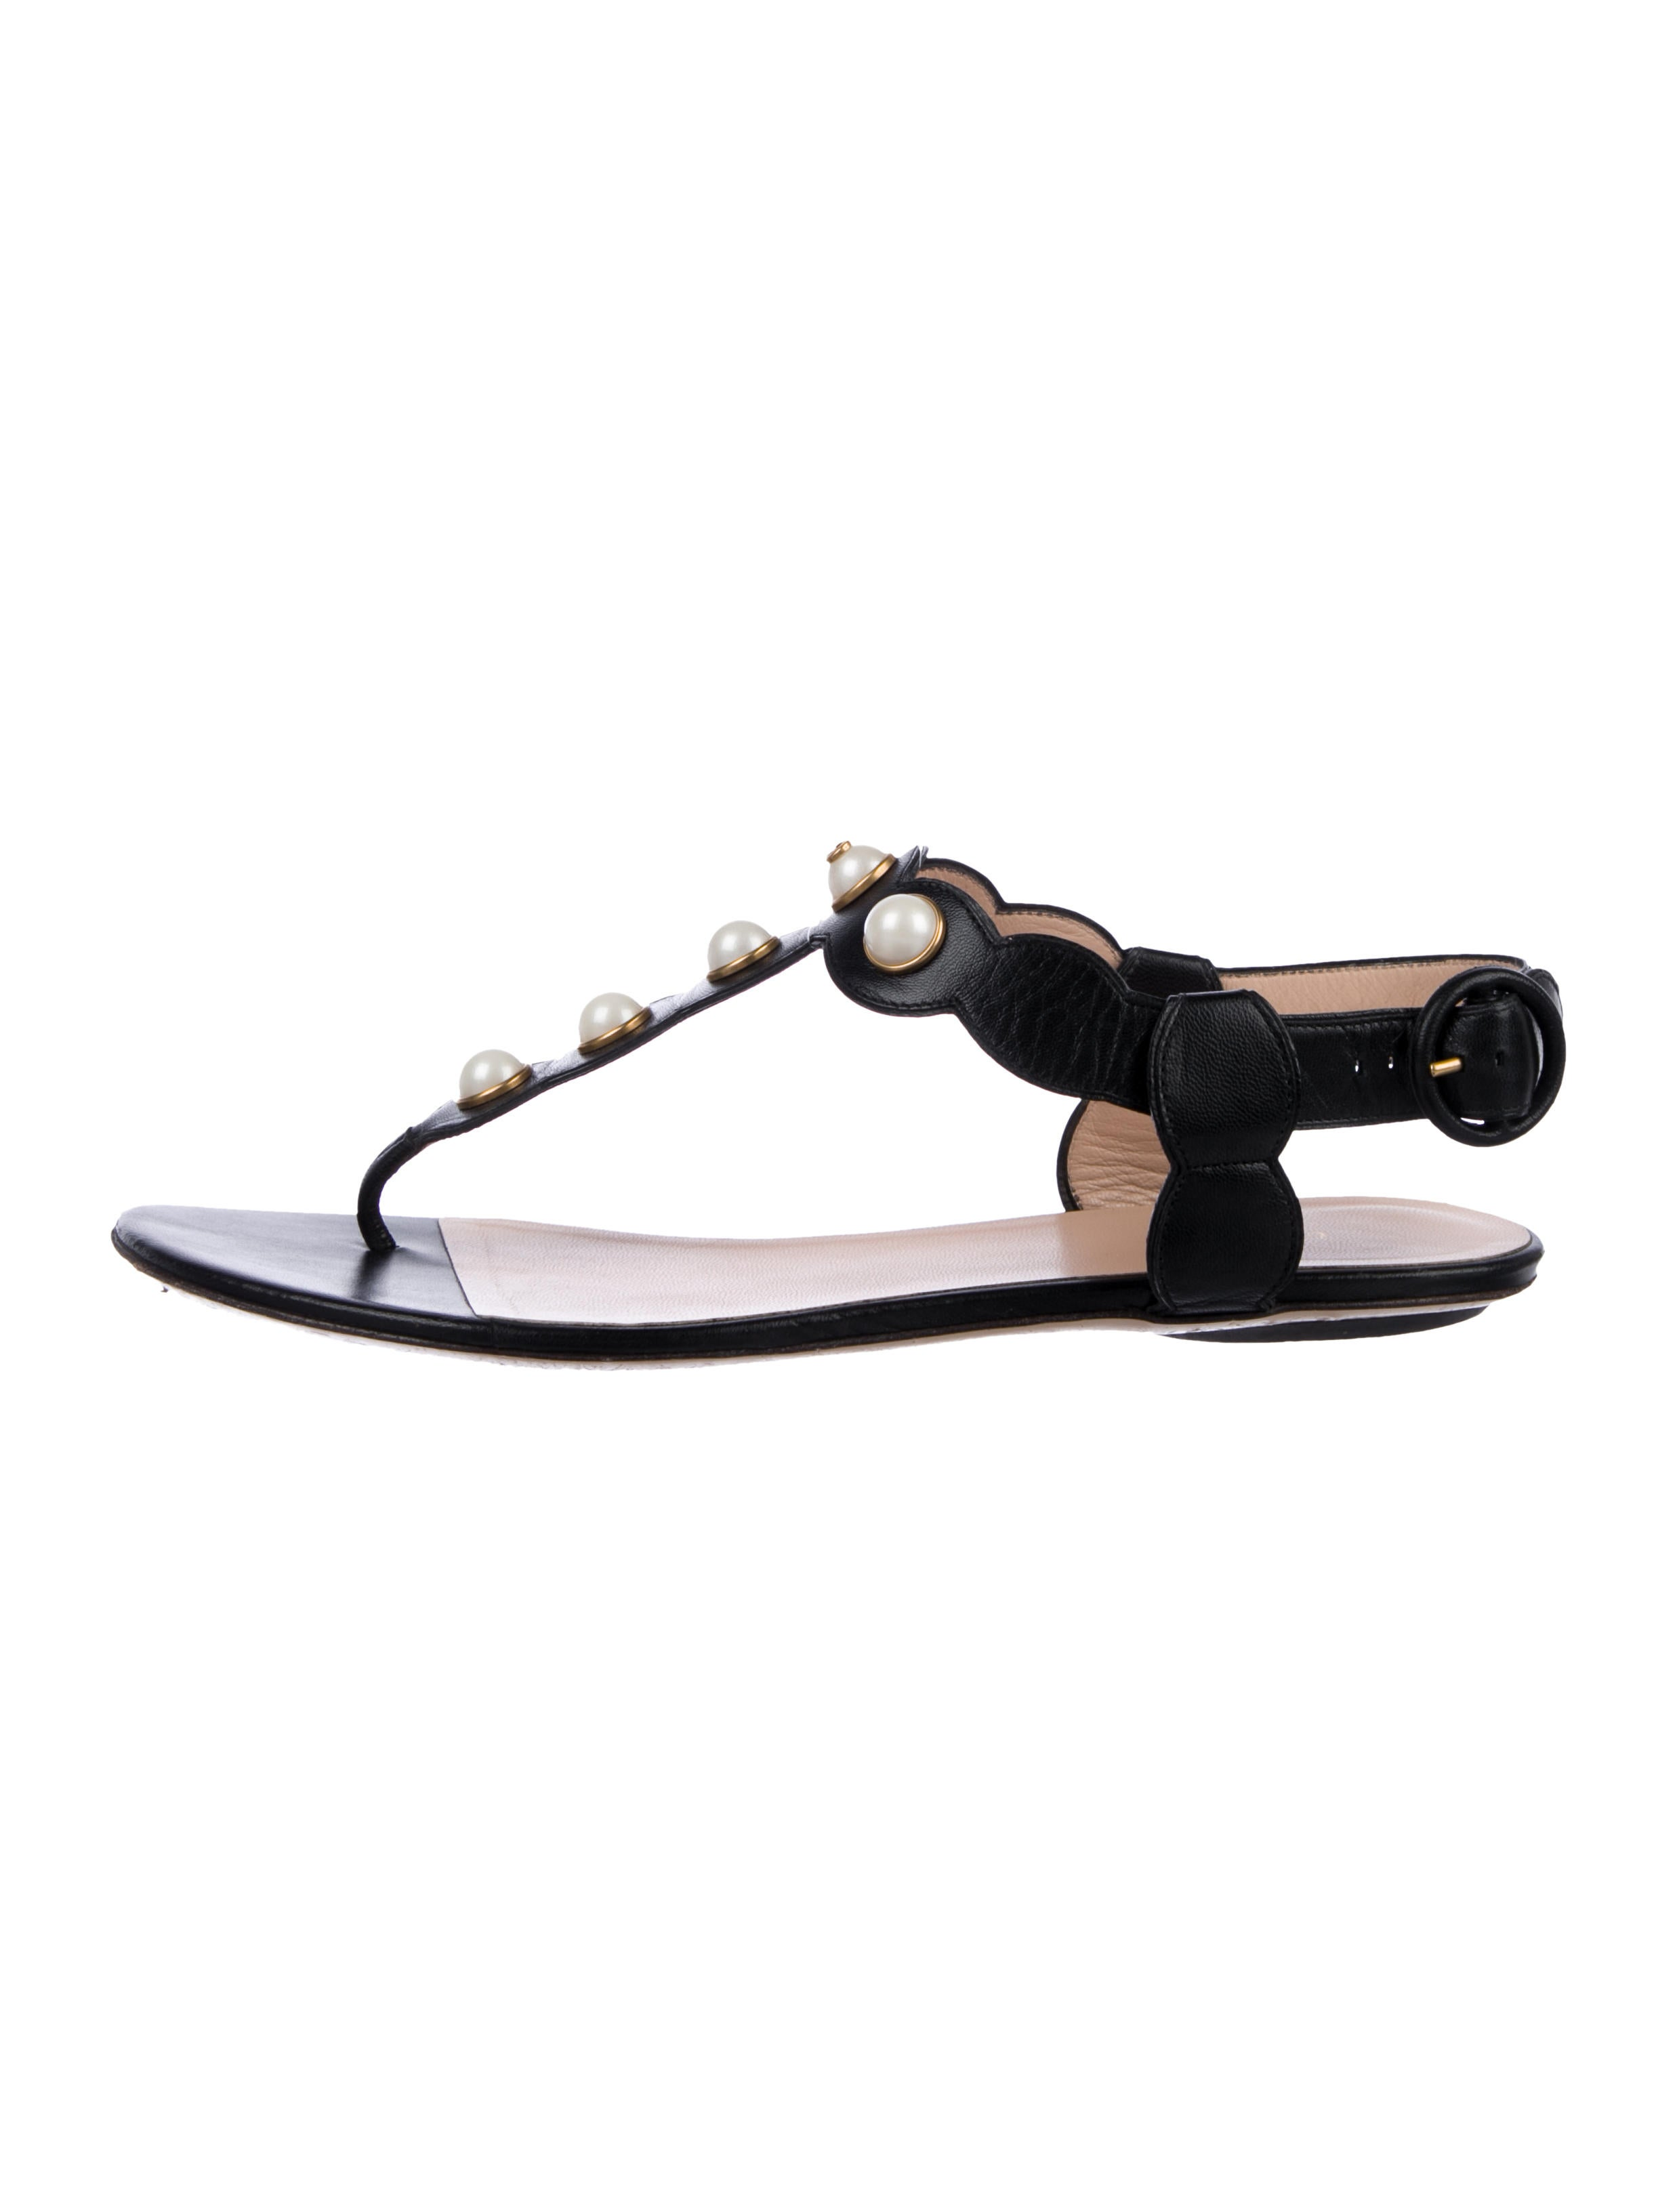 aeefe5bfa Gucci Leather Thong Sandals - Shoes - GUC303283